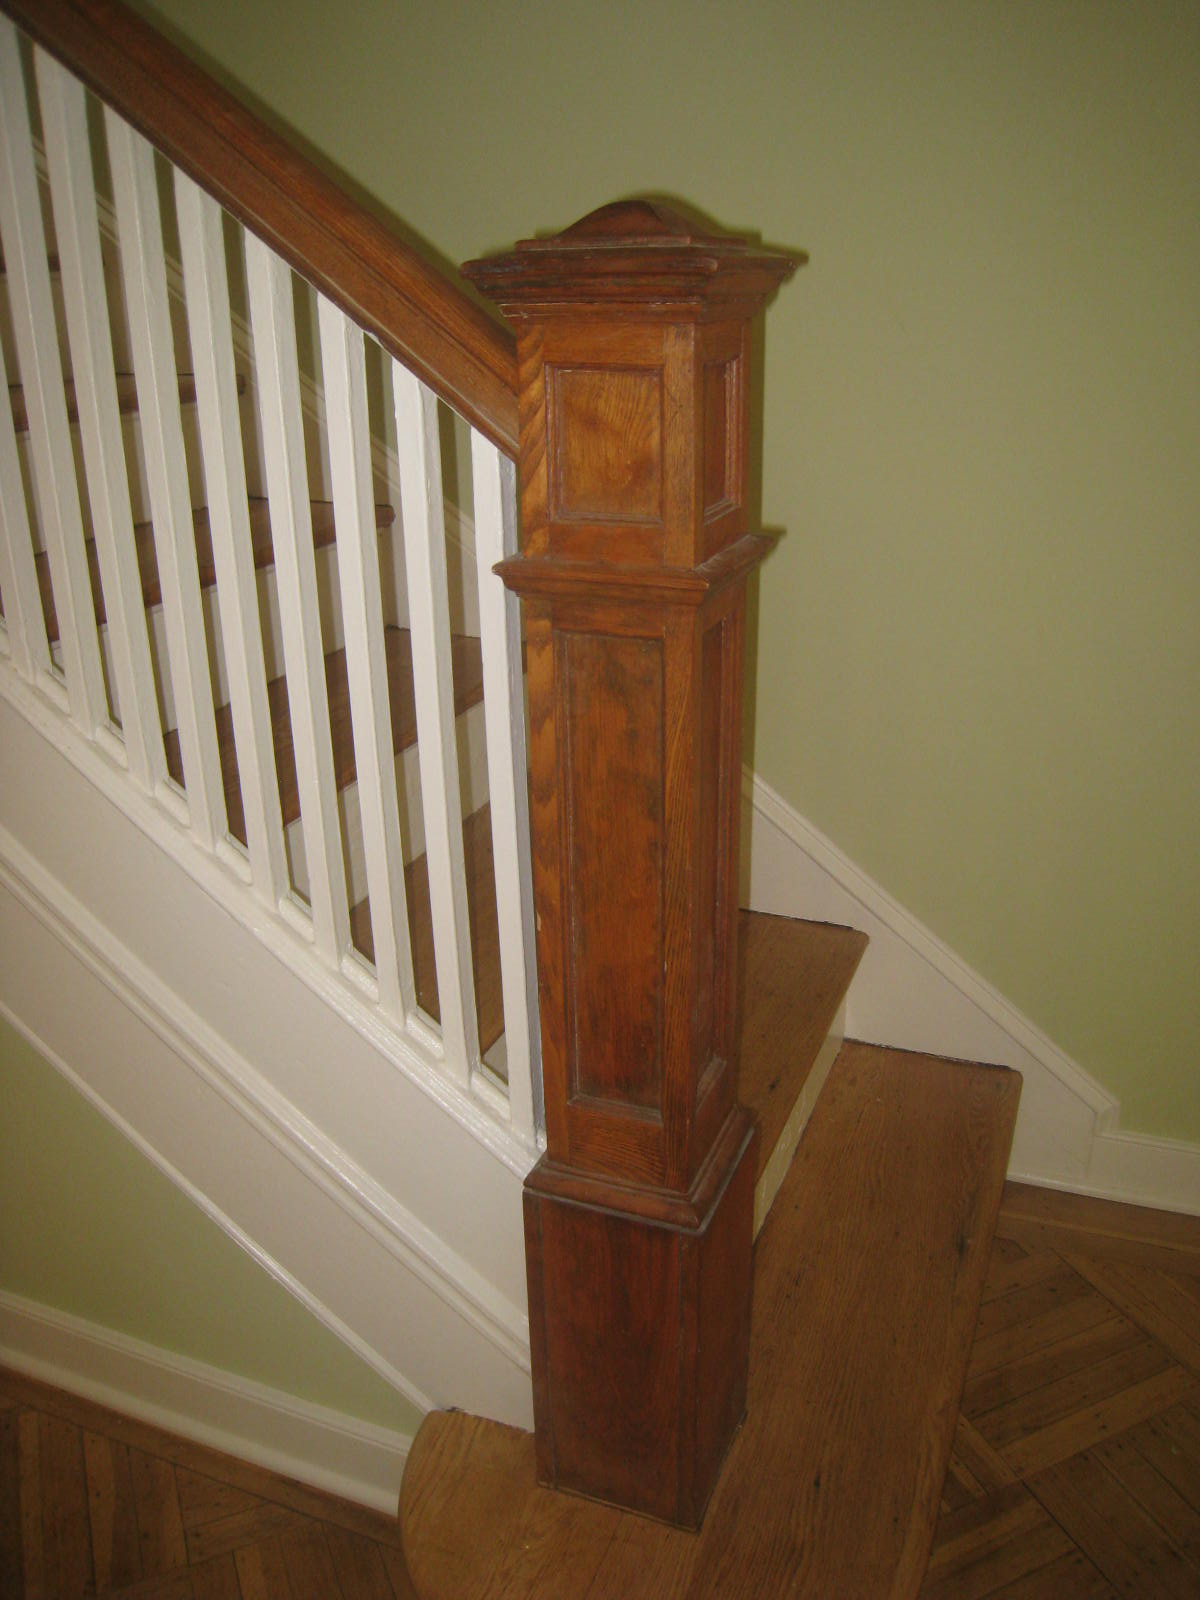 This newel was never finished